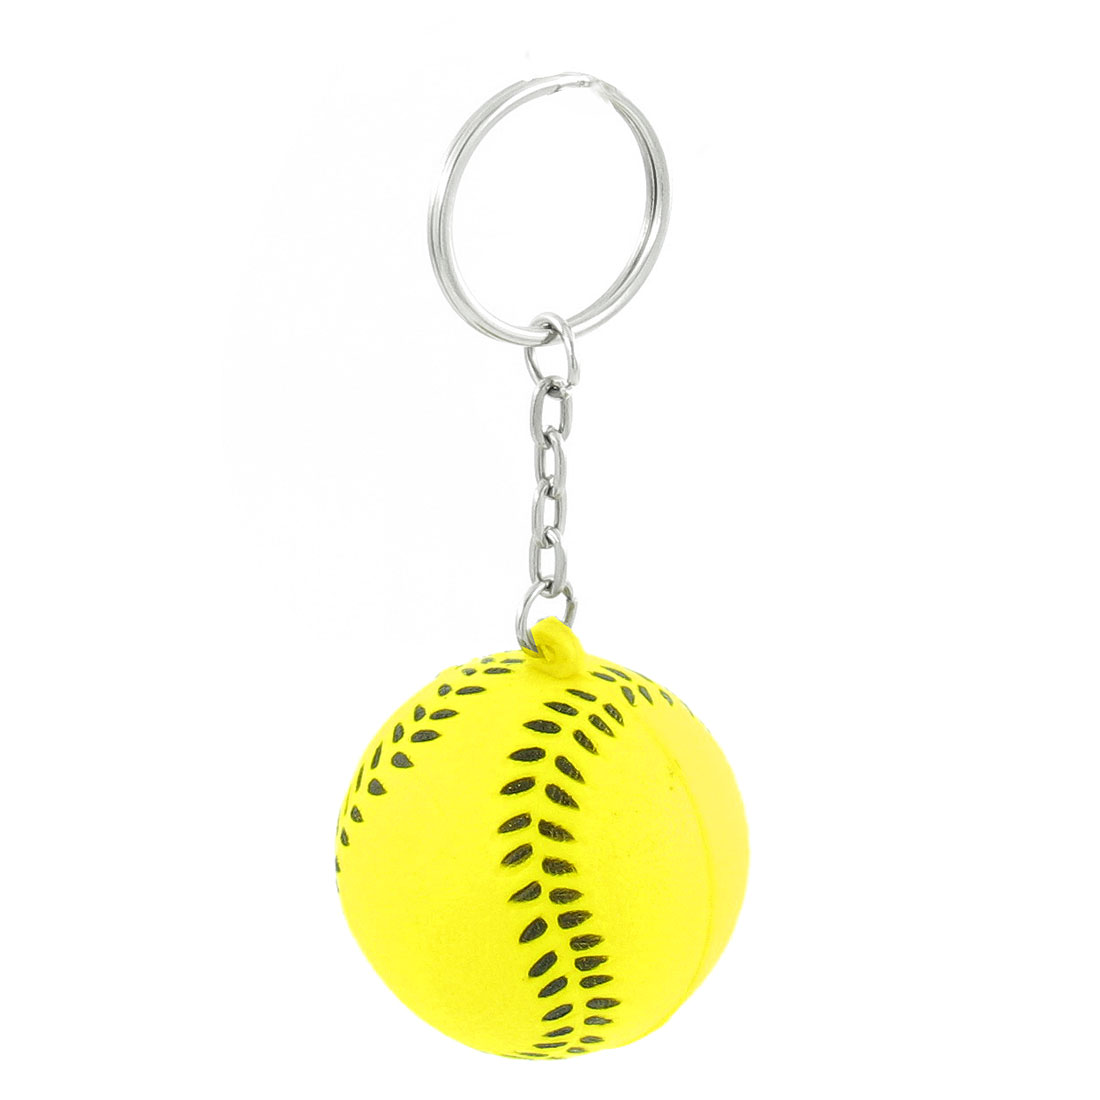 Black Yellow Baseball Shape Sport Stress Ball Key Ring Keychain Phone Decor